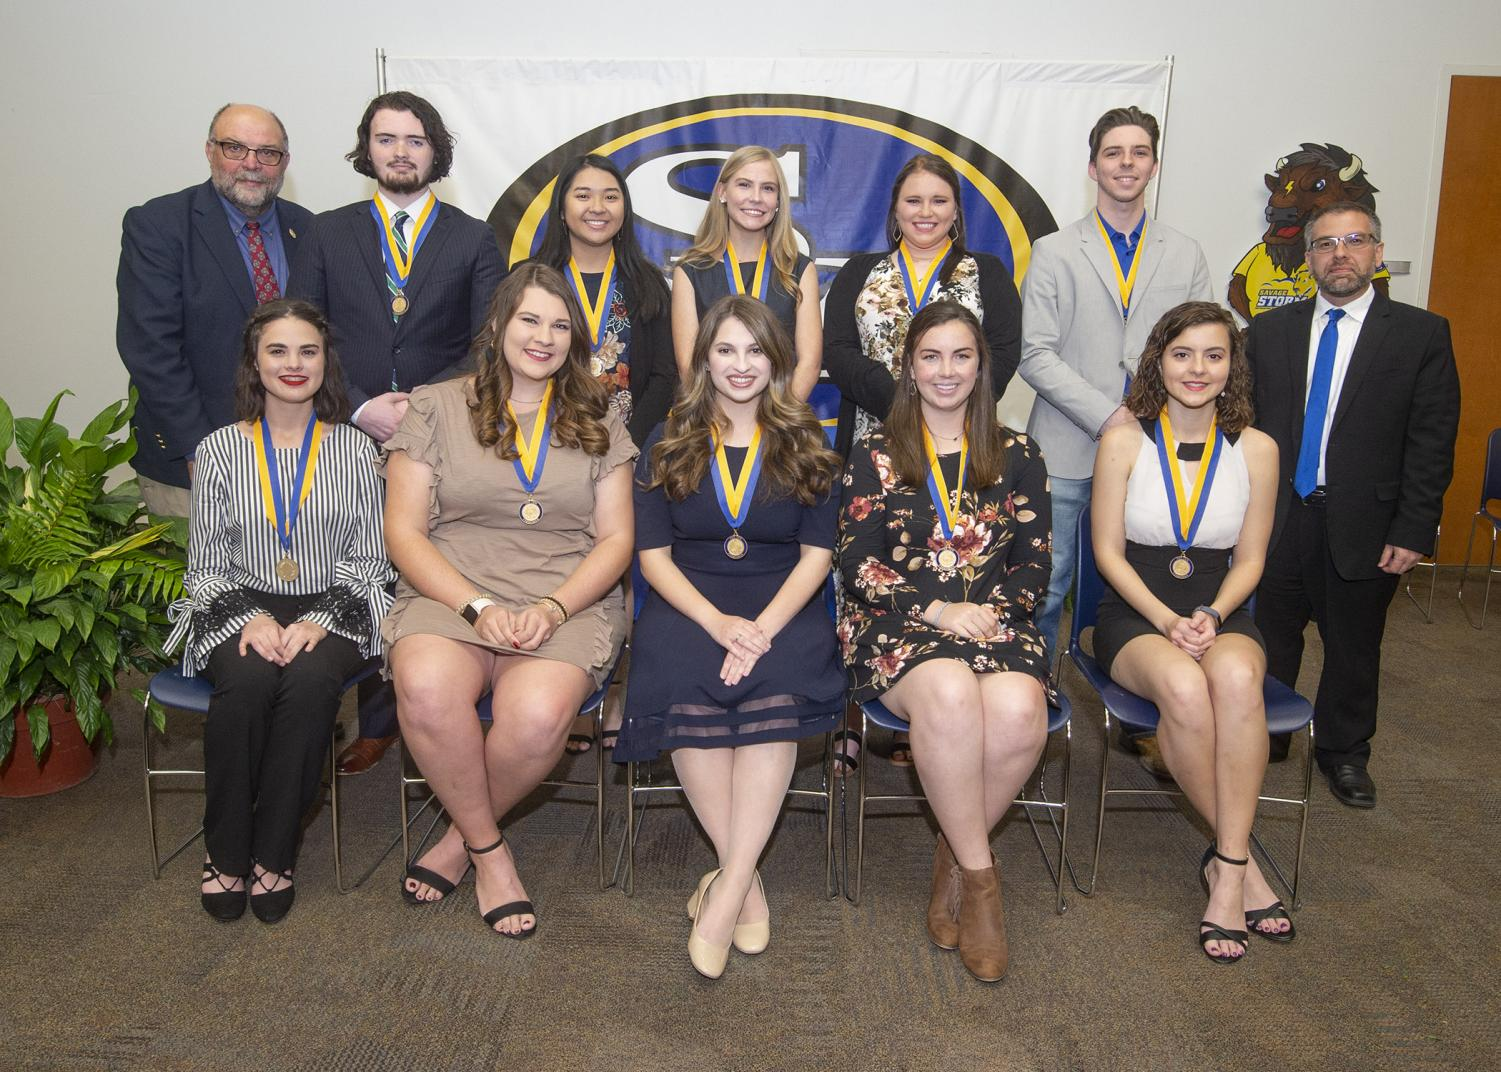 Front row, left to right, are Katie Thomas, Carli Wharton, Anna Alessia Antuono, Madelyn Bradberry, and Reagan Benson. Back row, Dr. Bryon Clark, Selby Stanton, Tammy Vo, Emily Dahl, Maegan Young, James Quarles, and Dr. Marlin Blankenship.